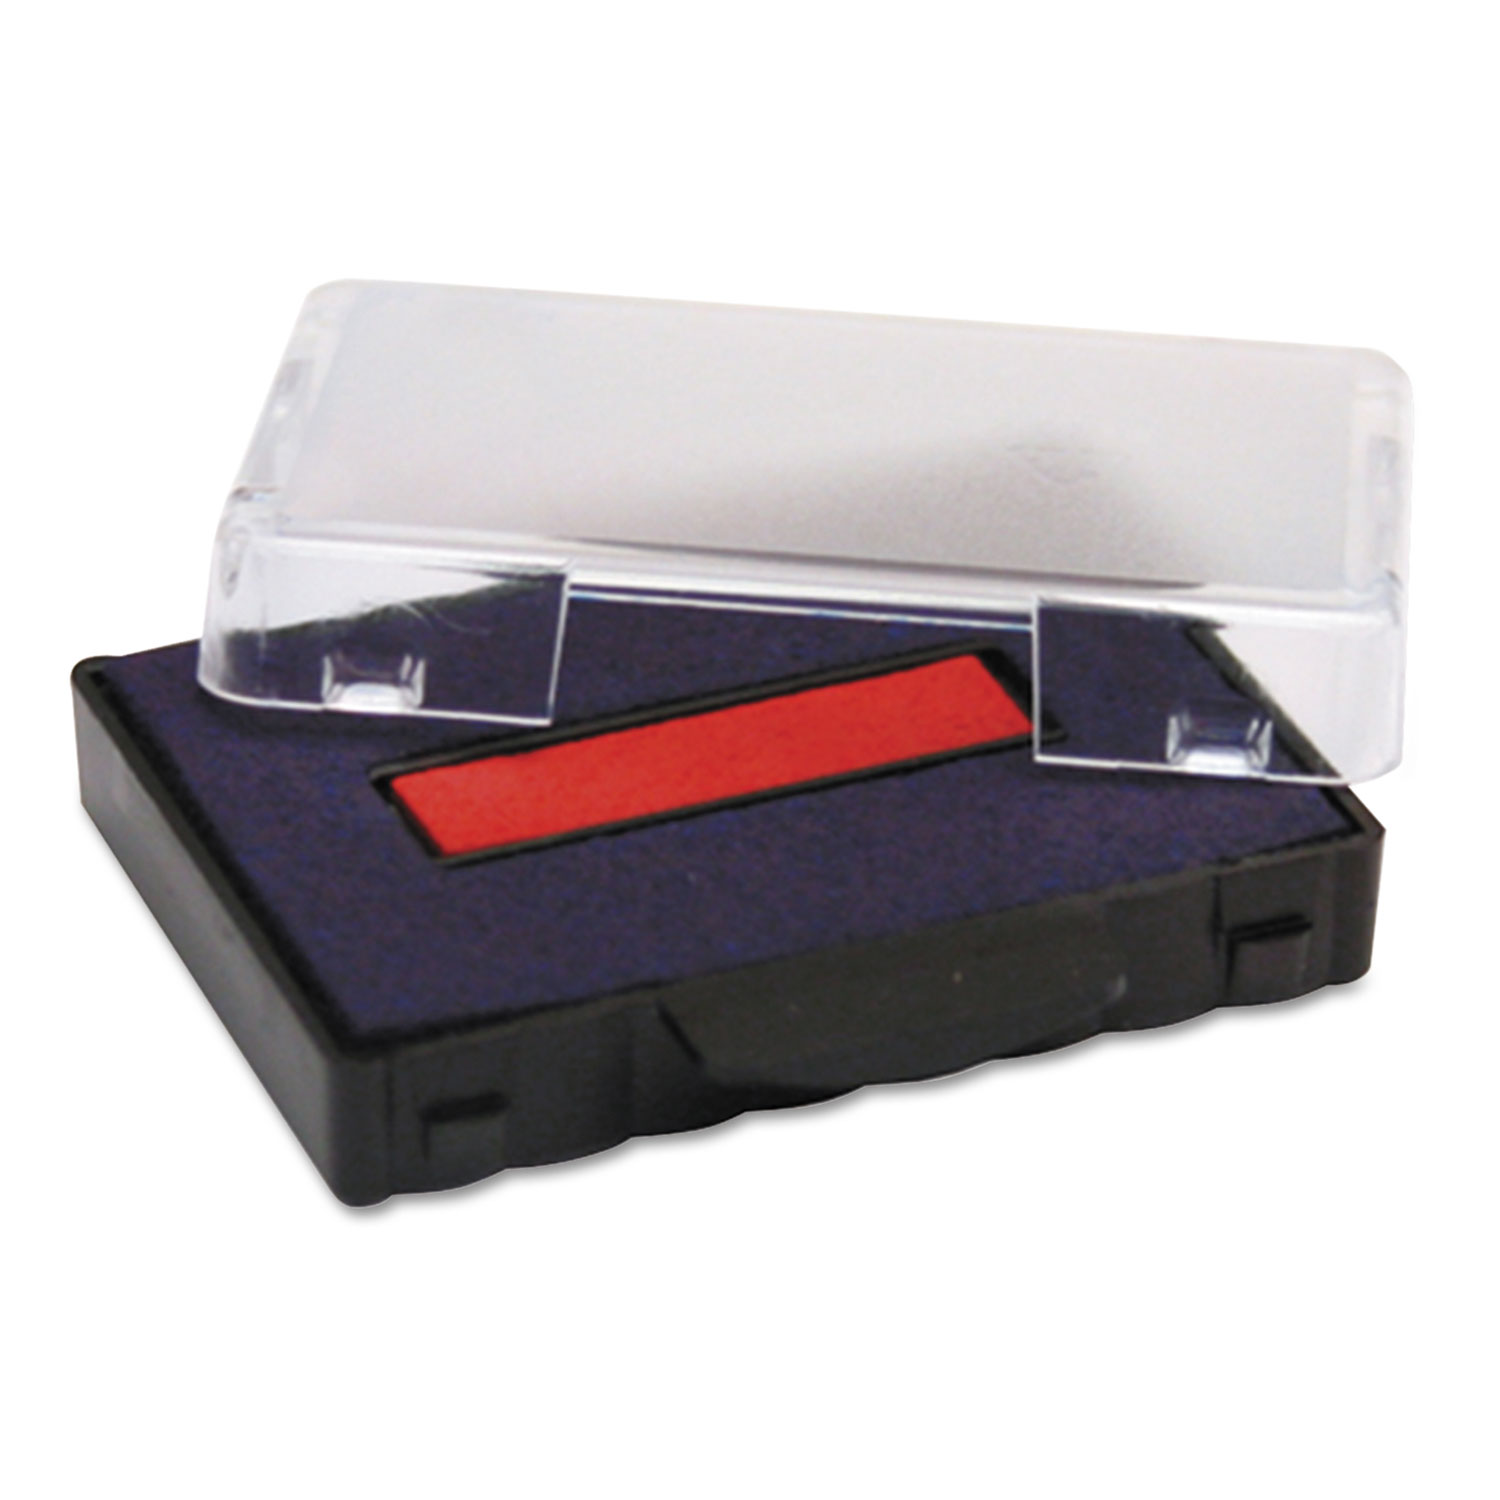 T5440 Dater Replacement Ink Pad, 1 1/8 x 2, Blue/Red